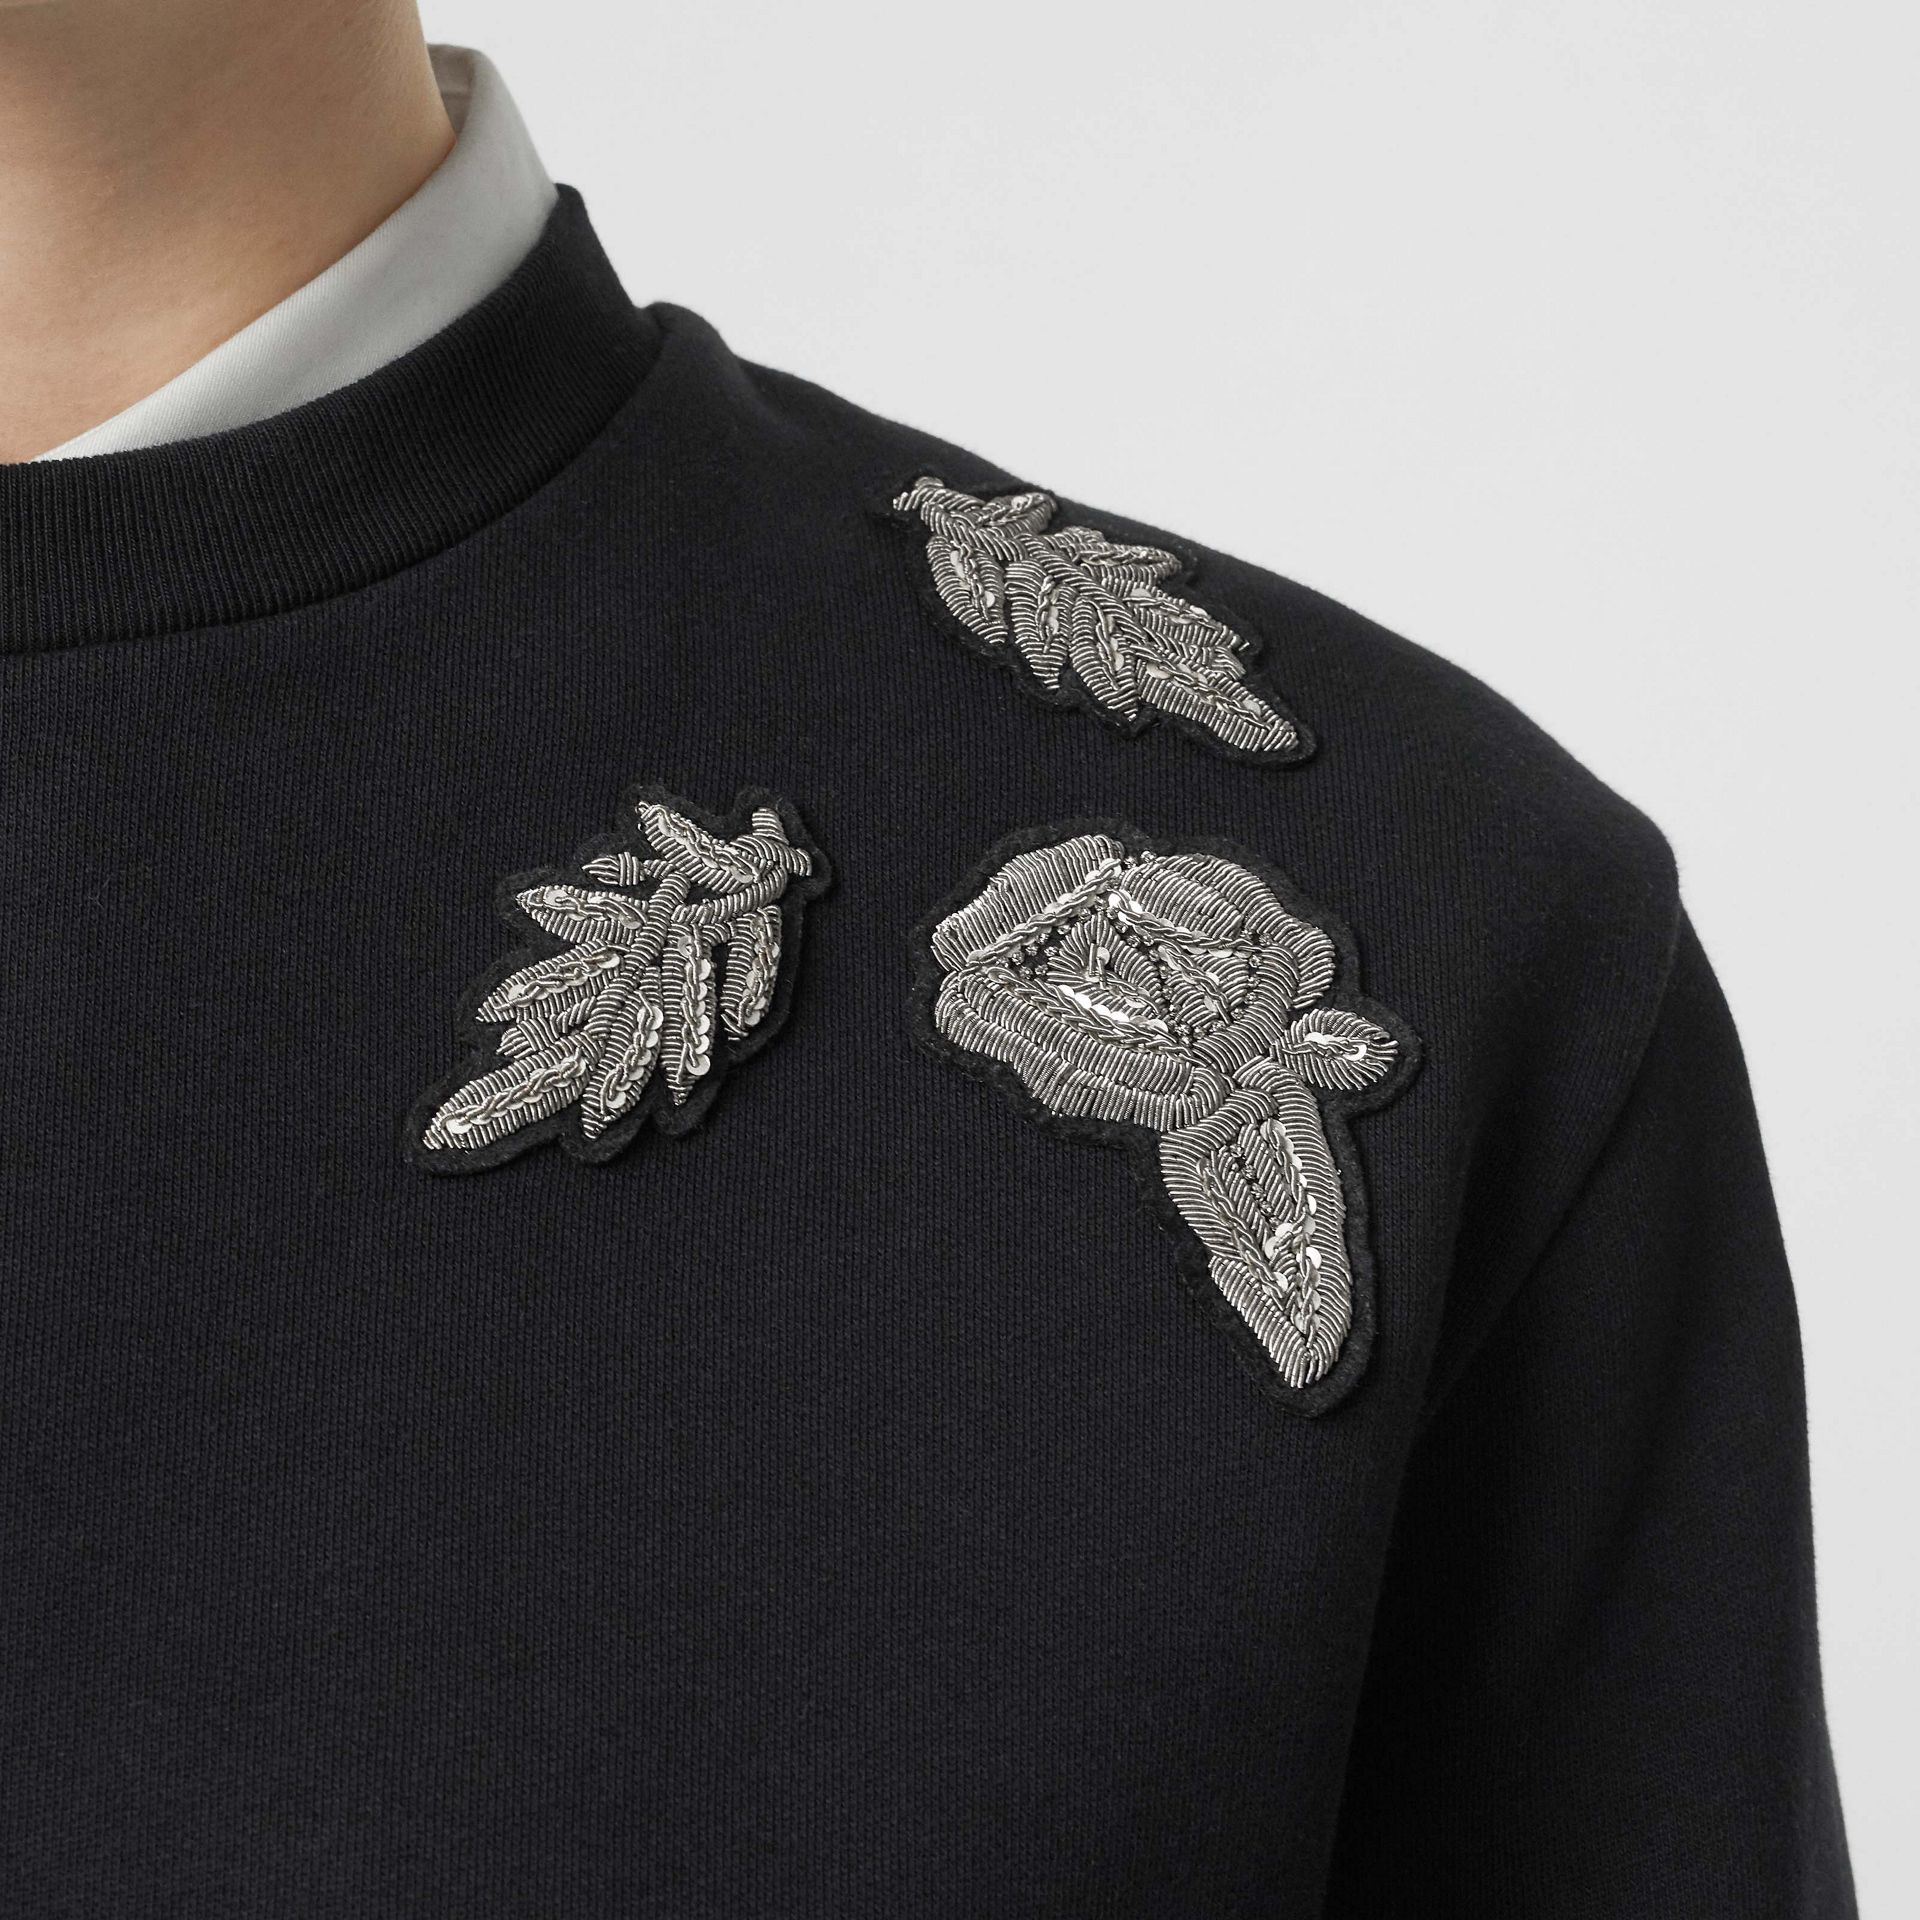 Bullion Floral Cotton Blend Sweatshirt in Black - Women | Burberry - gallery image 4